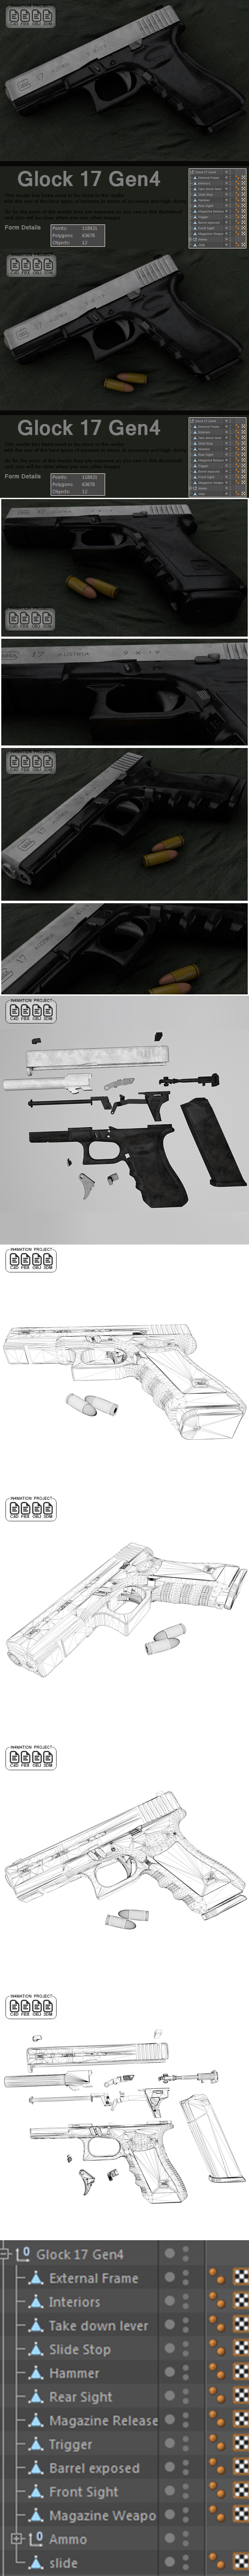 Glock 17 Gen 4 [ 3D MODEL ] Real - 3DOcean Item for Sale